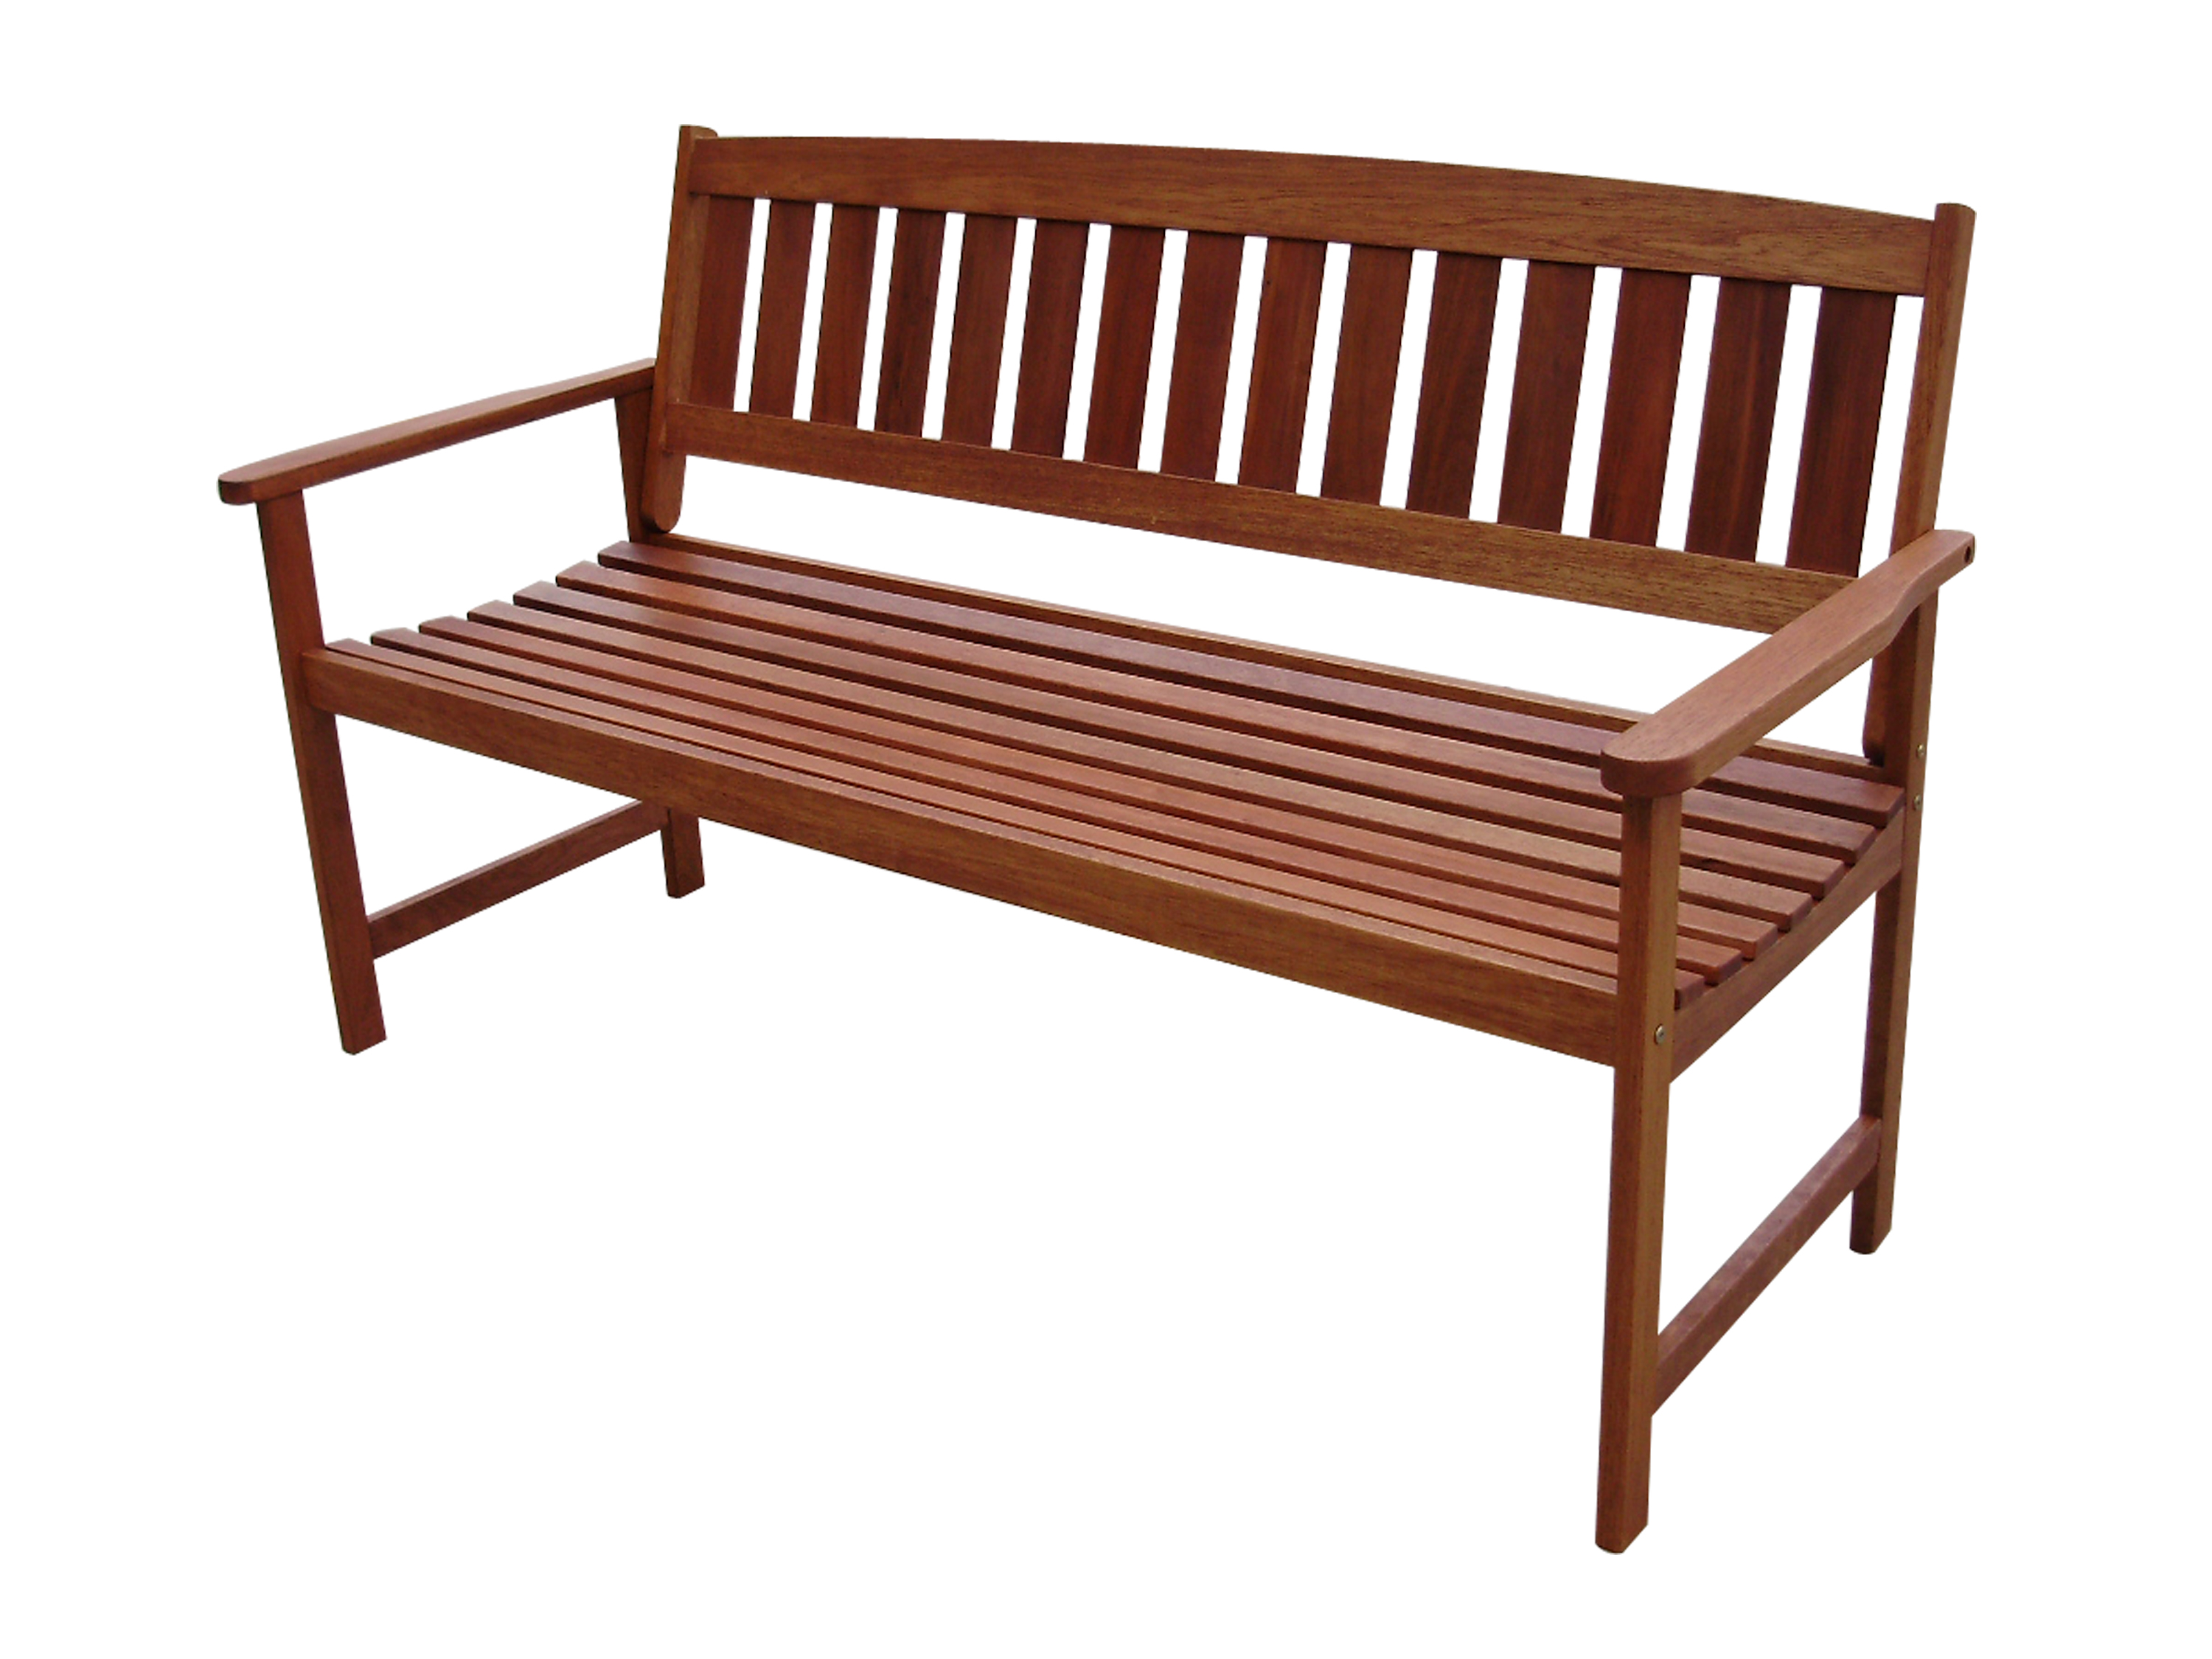 Vonhaus 3 Seater Hardwood Wooden Garden Bench Outdoor Patio Furniture Seat Ebay